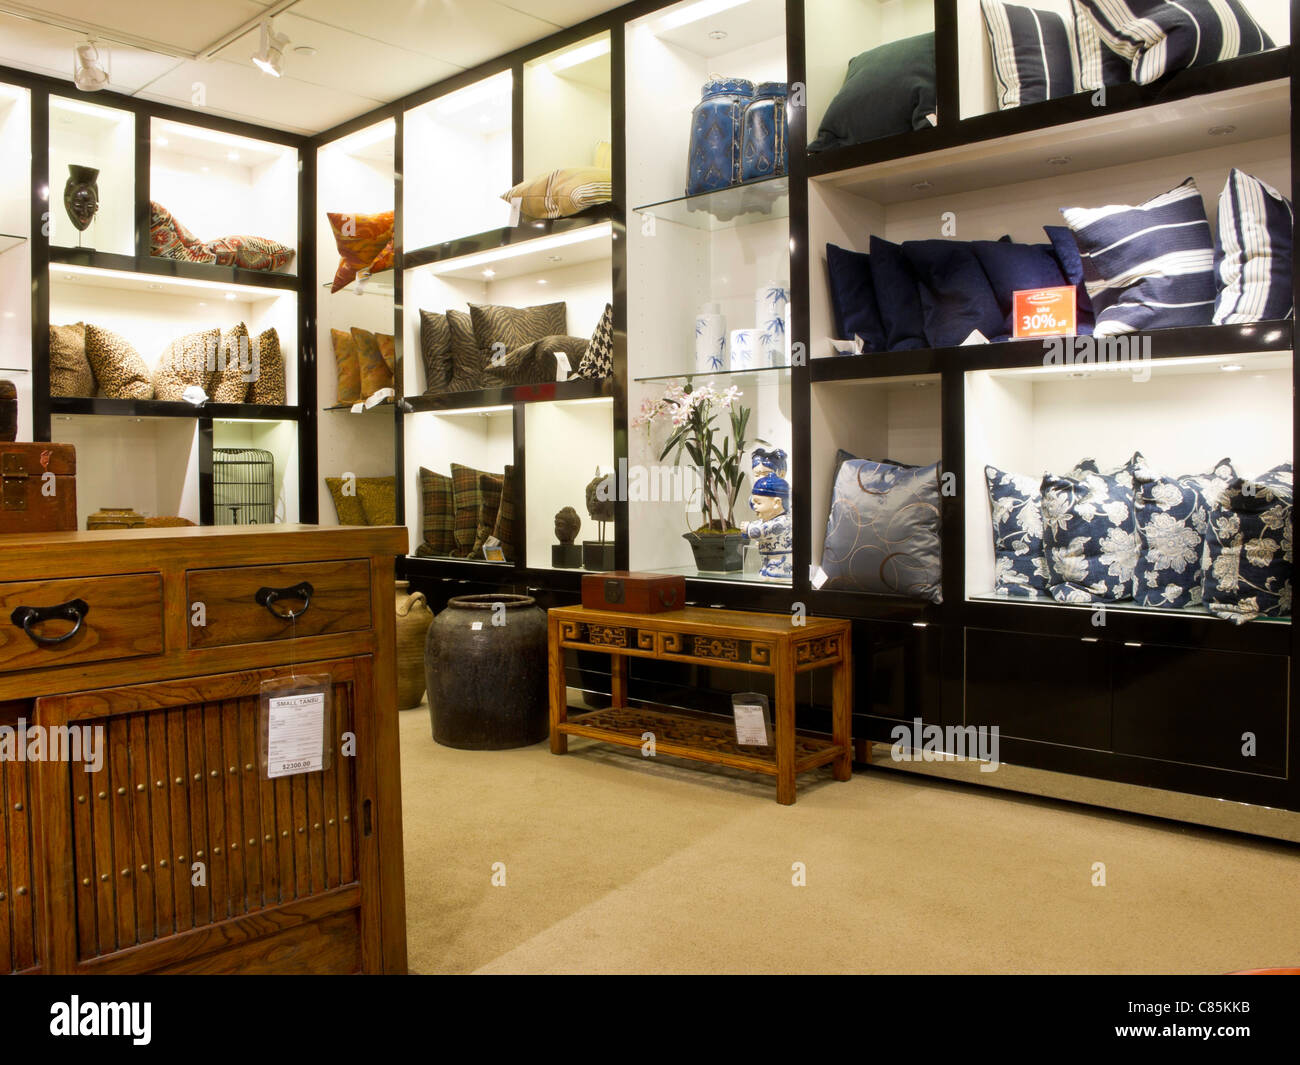 Pillows And Accessories Display, Bloomingdaleu0027s Department Store Interior,  NYC   Stock Image